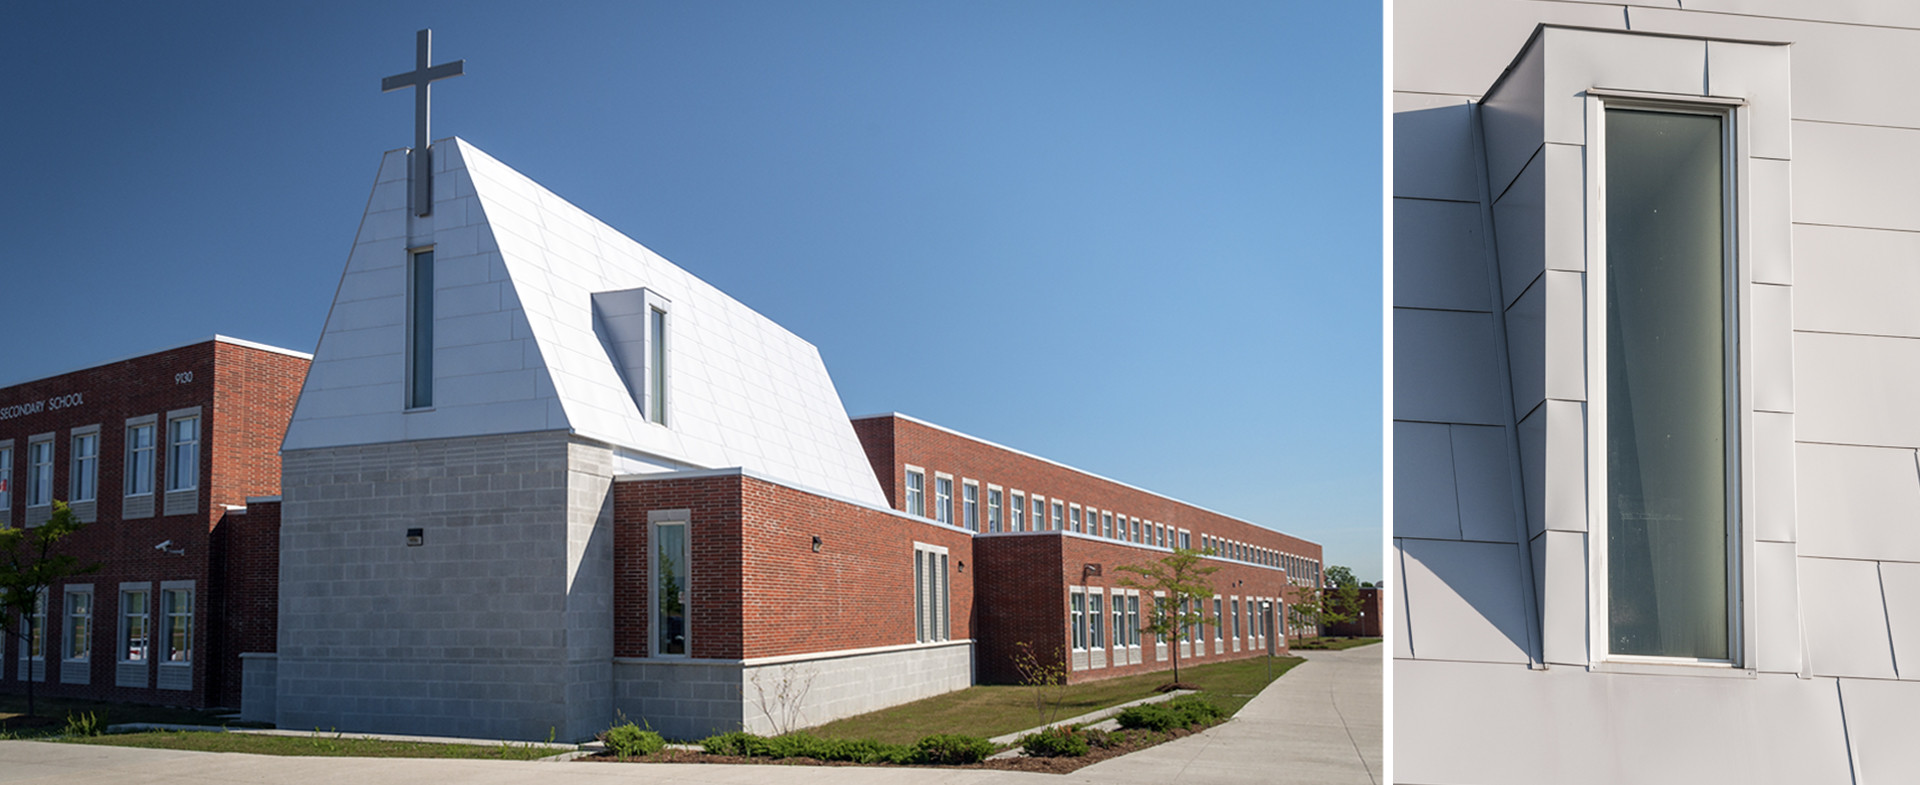 St-Michael-Catholic-Secondary-School-4